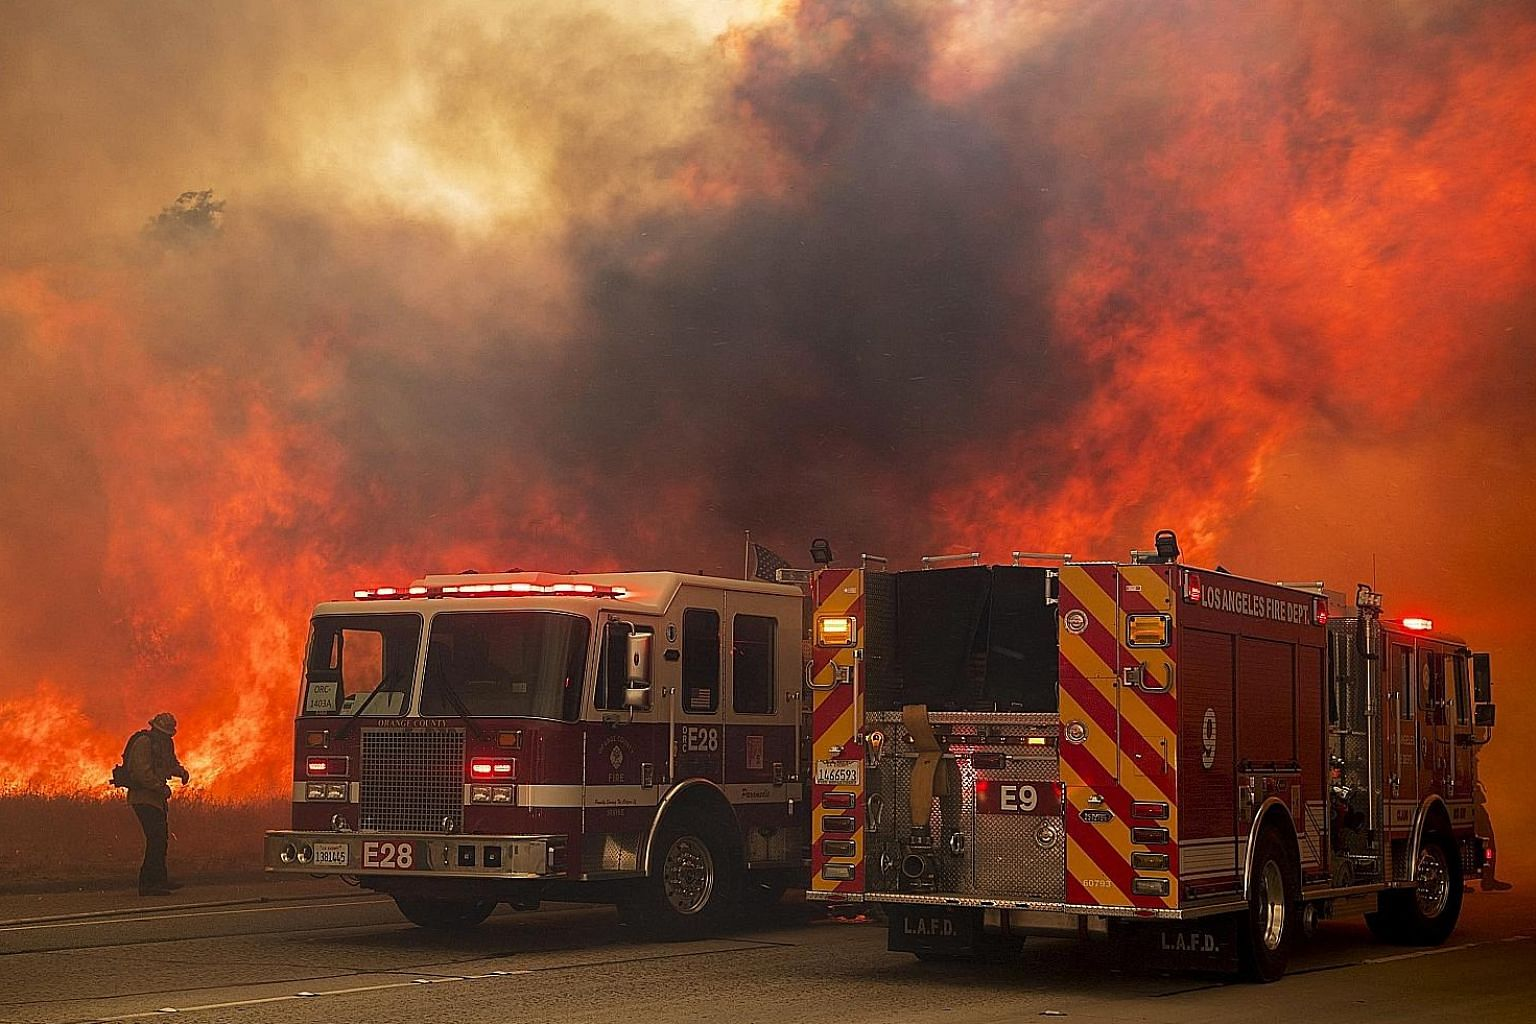 A wildfire erupting in California's Simi Valley on Wednesday. The long-term solutions to many of the state's problems are obvious, says the writer: To stave off fire and housing costs, people should live together more densely, rely less on cars and b